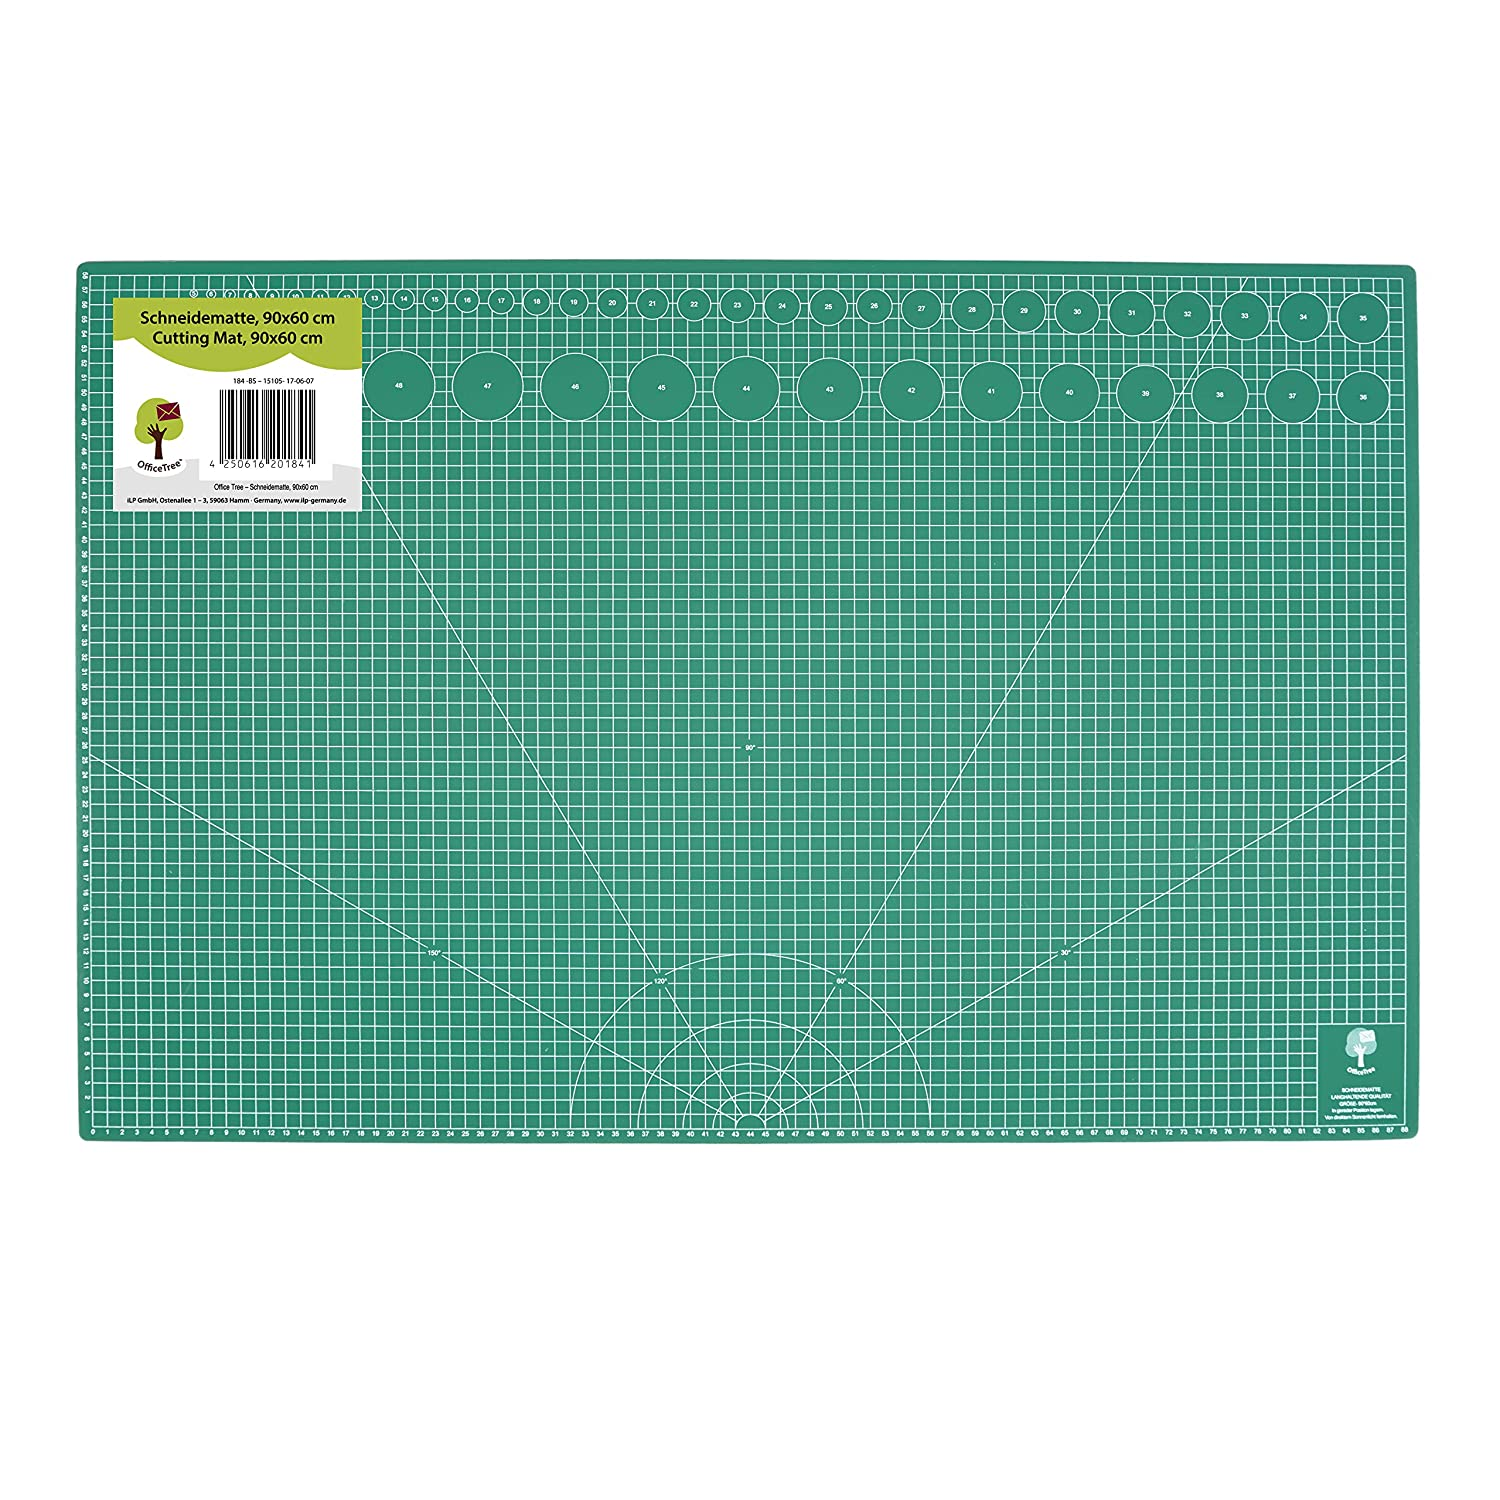 OfficeTree® Cutting Mat - 90x60 cm (A1) Green - Two-Sided Grid and Markings for Professional cuts - PVC 5-Layer Recyclable - self-Healing Surface - Premium Quality iLP GmbH